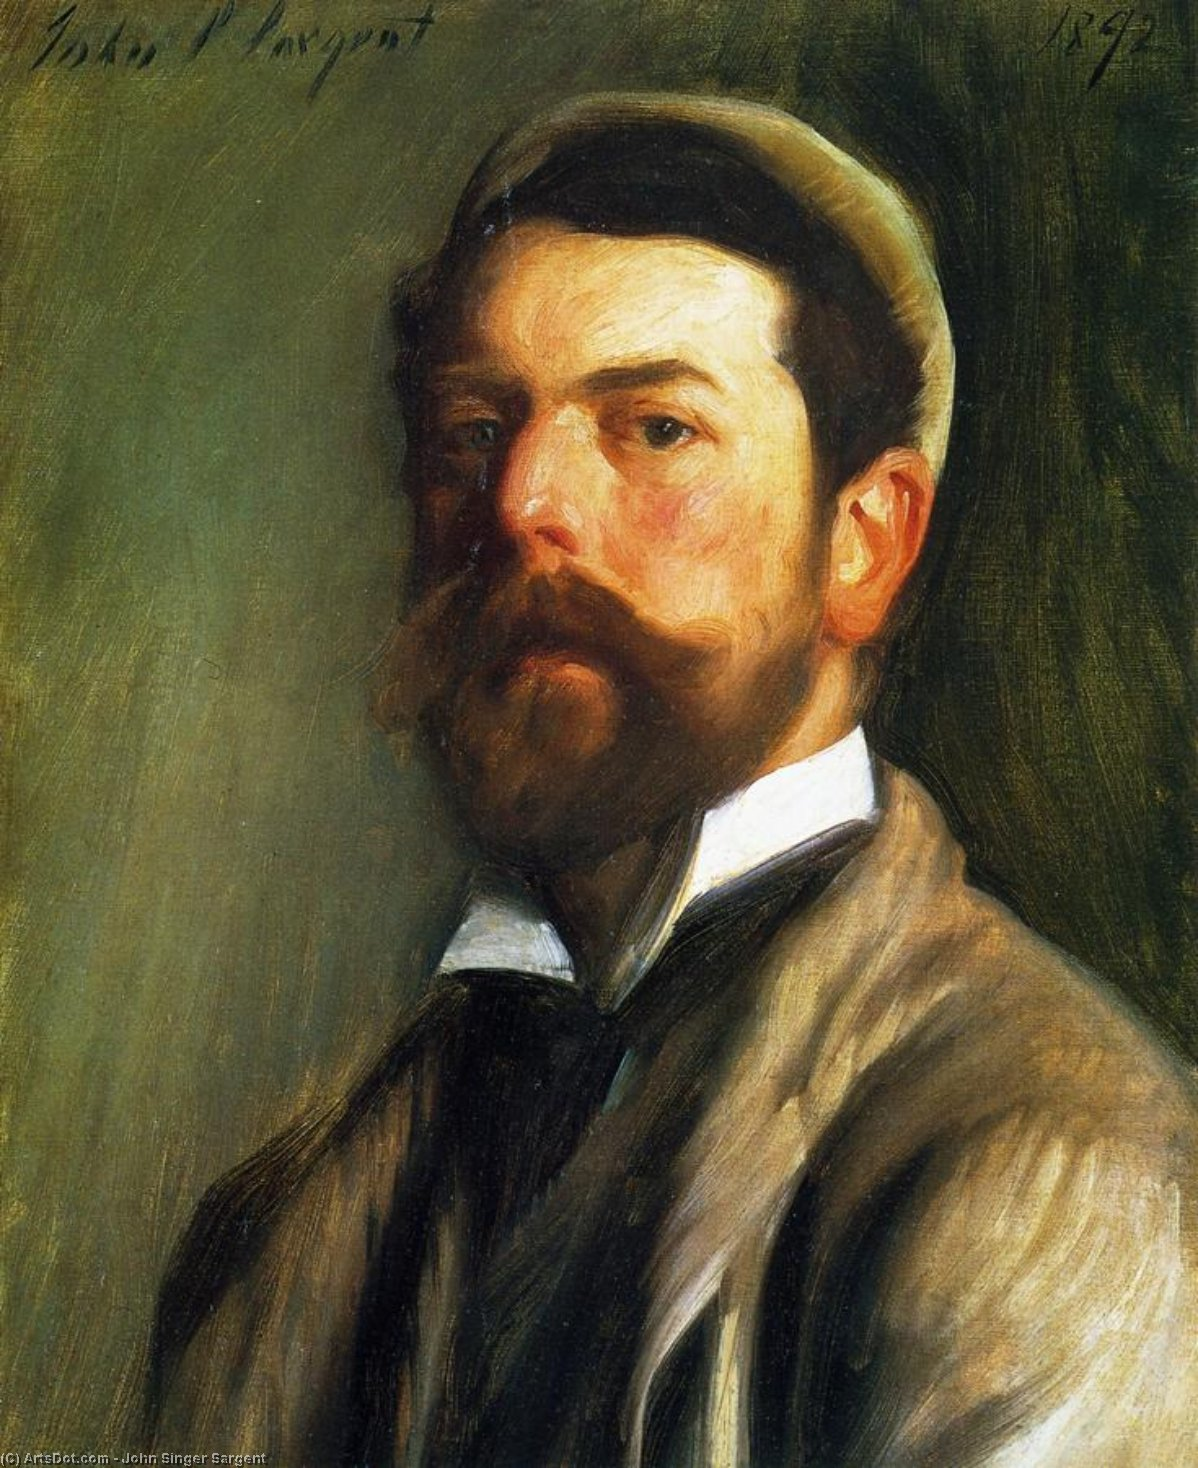 a biography of john singer sargent Sargent's biography (1856-1925) john singer sargent was an american painter by birth-right he loved his country yet he spent most of his life in europe he was the.